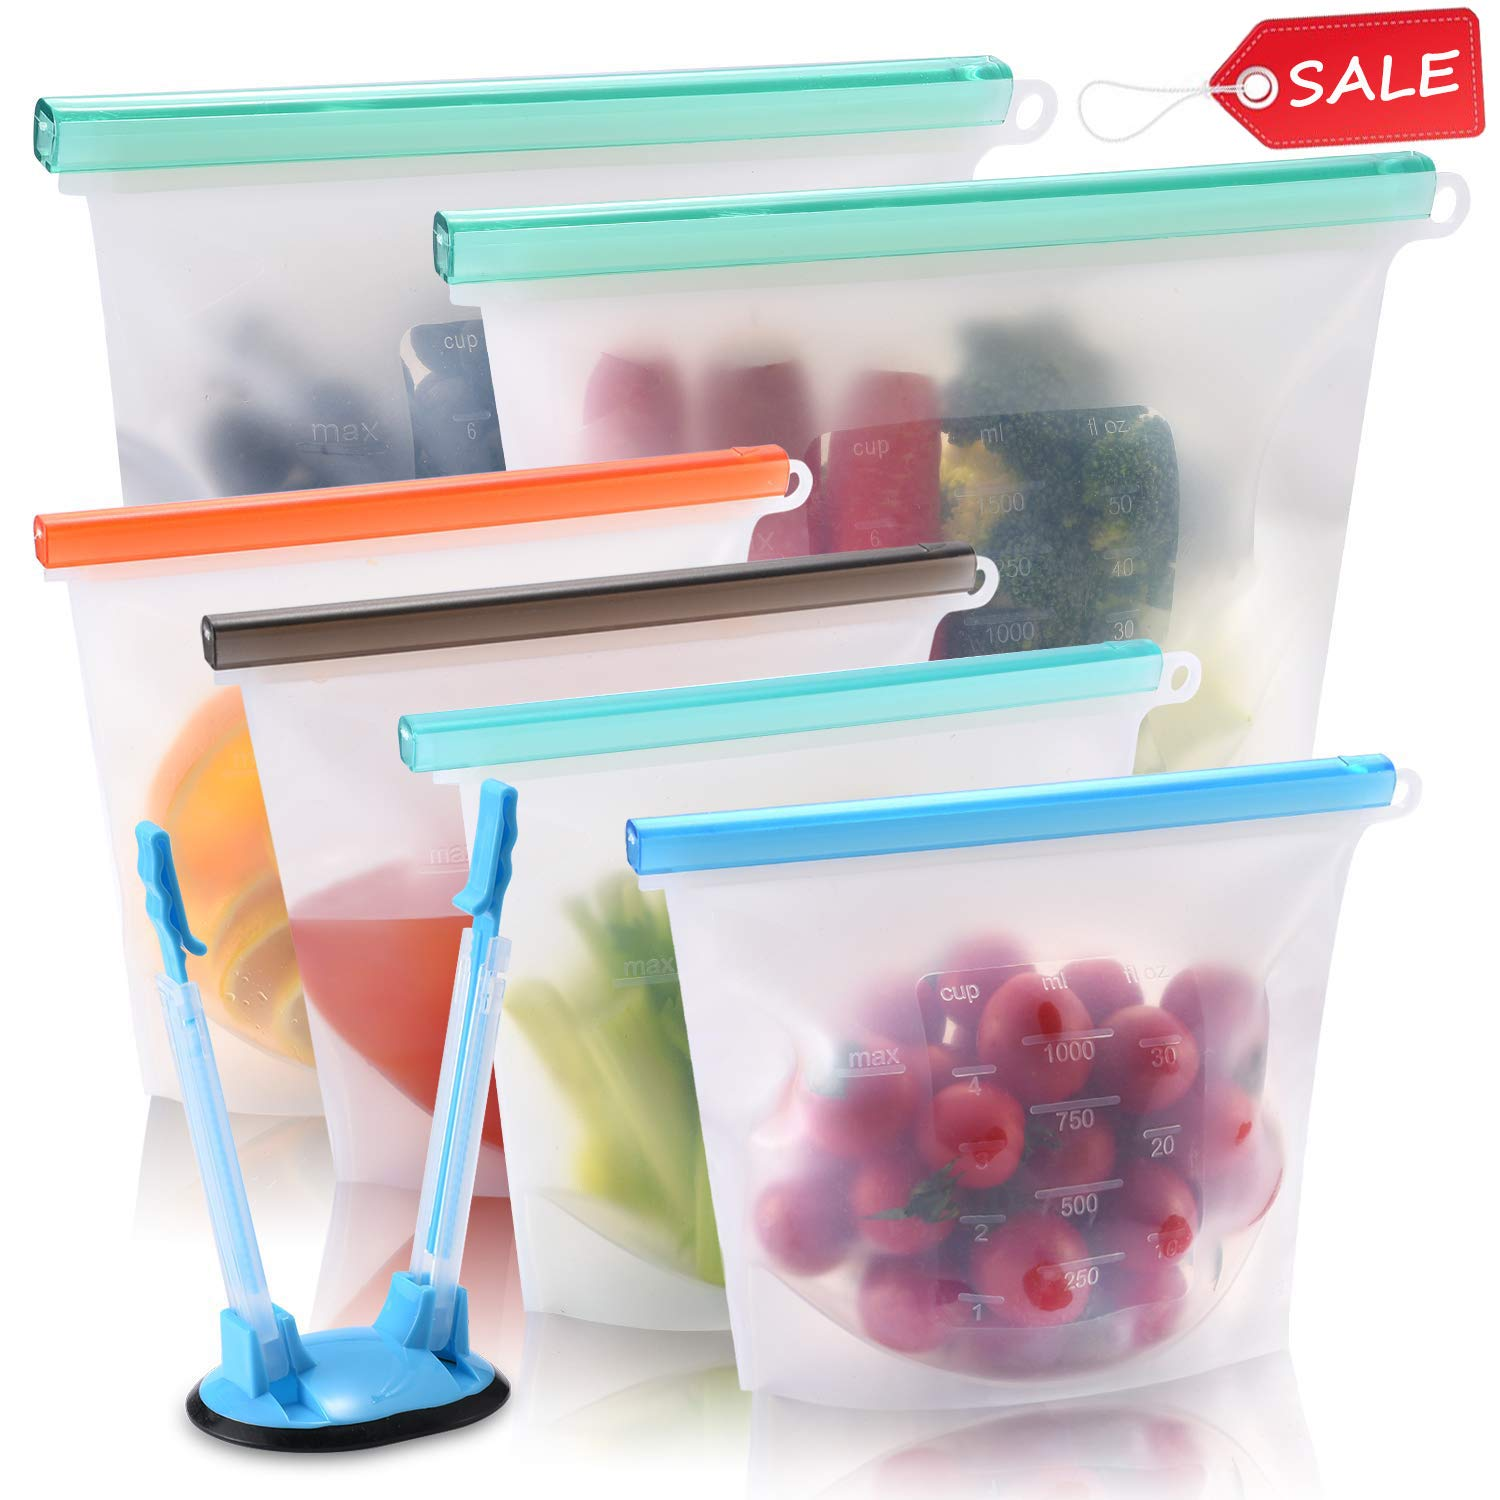 Perfect for freezer foods!